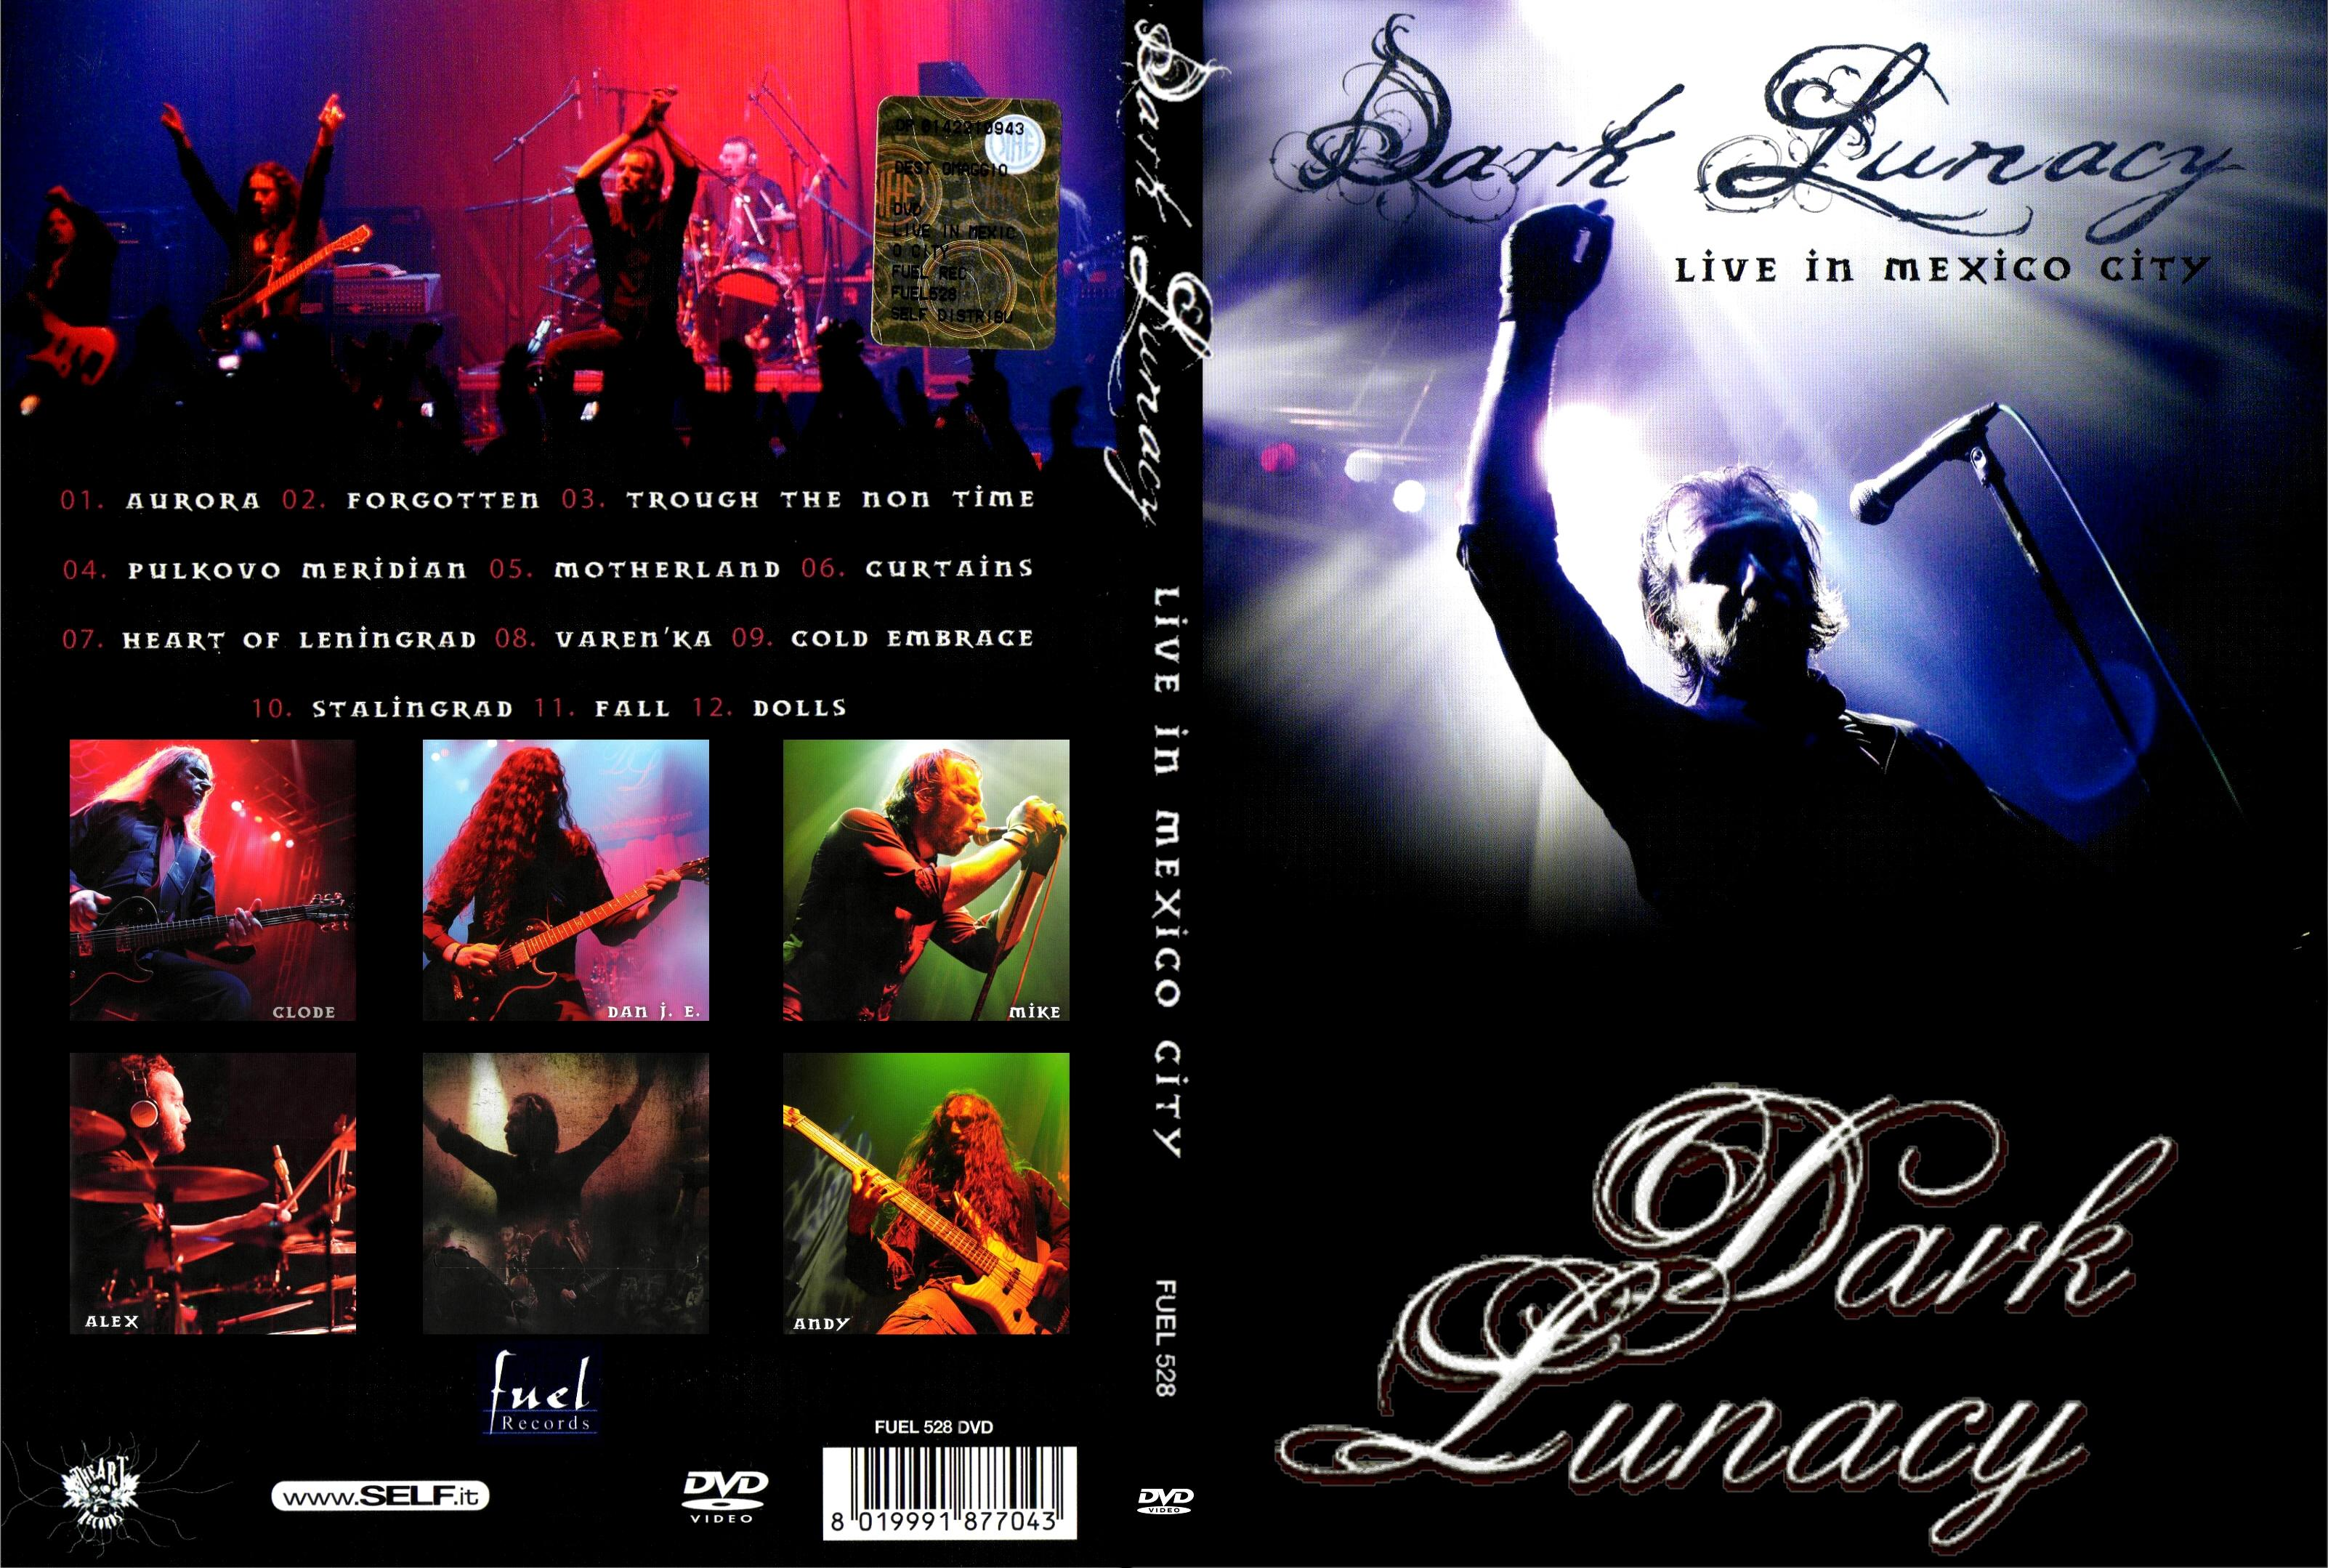 COVERS BOX SK ::: Dark Lunacy - Live In Mexico City (2013) - high